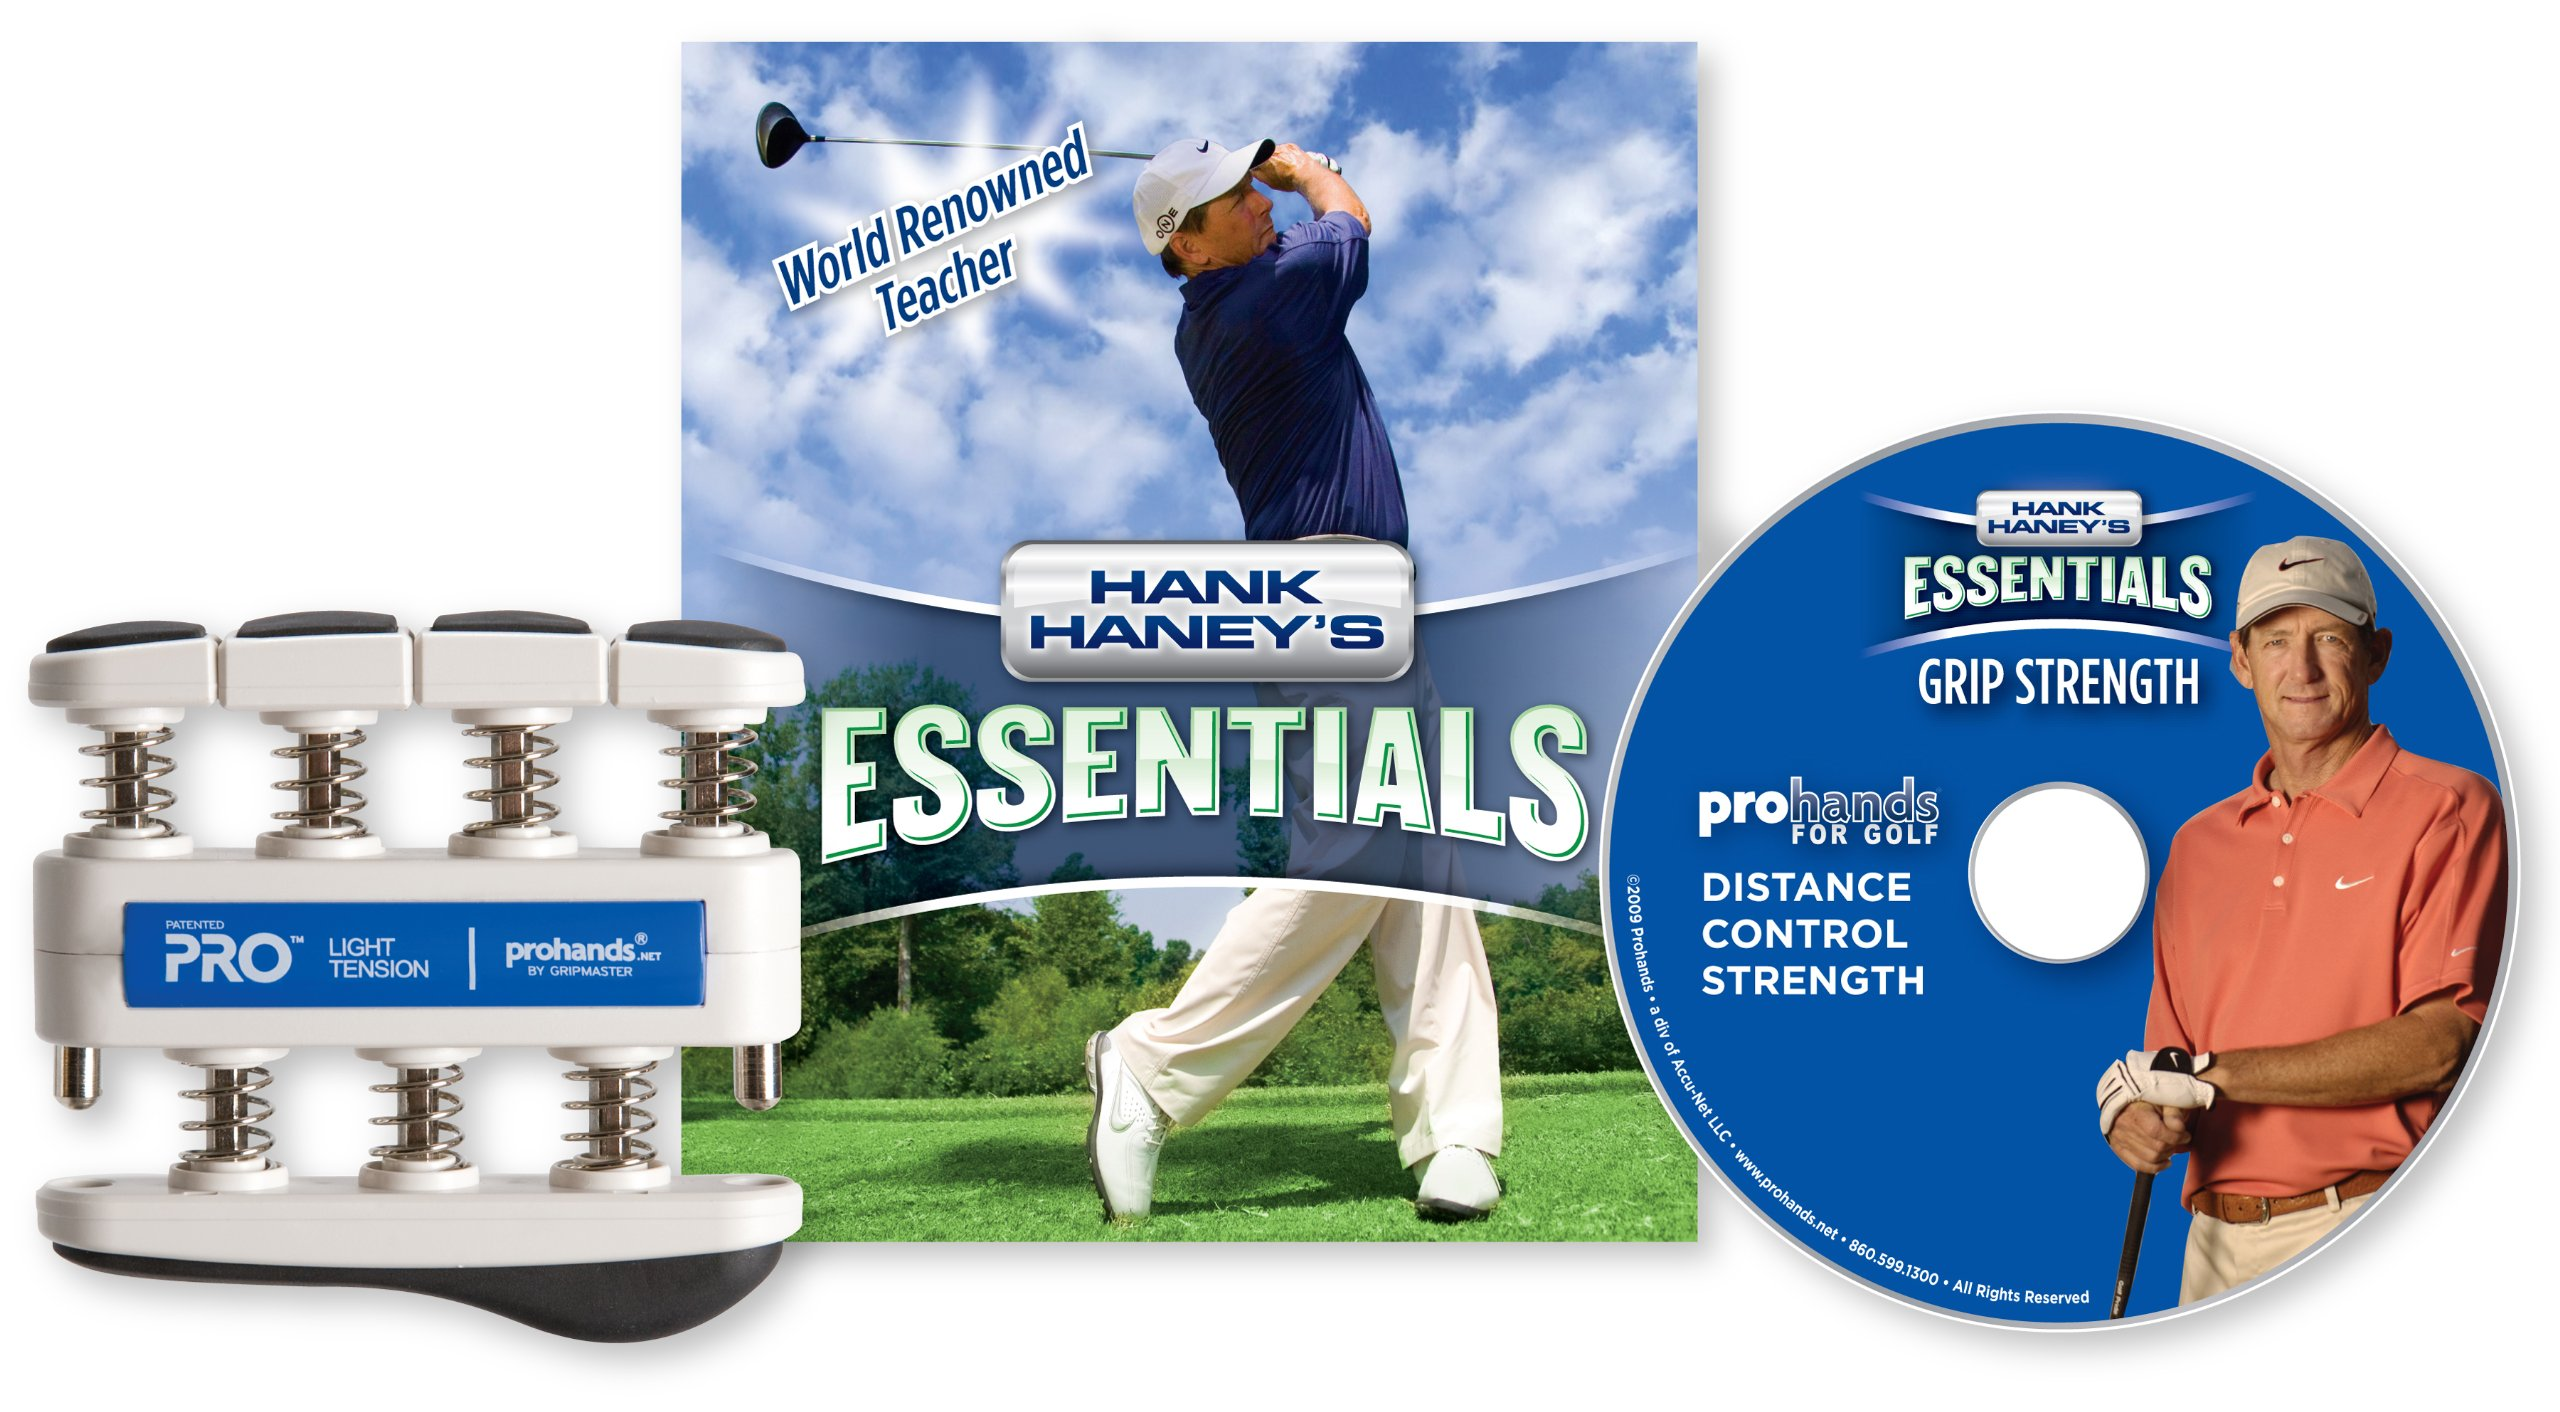 Hank Haney's Essentials Grip Strength DVD and Exerciser, Light Tension (5-Pounds per Finger) by Prohands